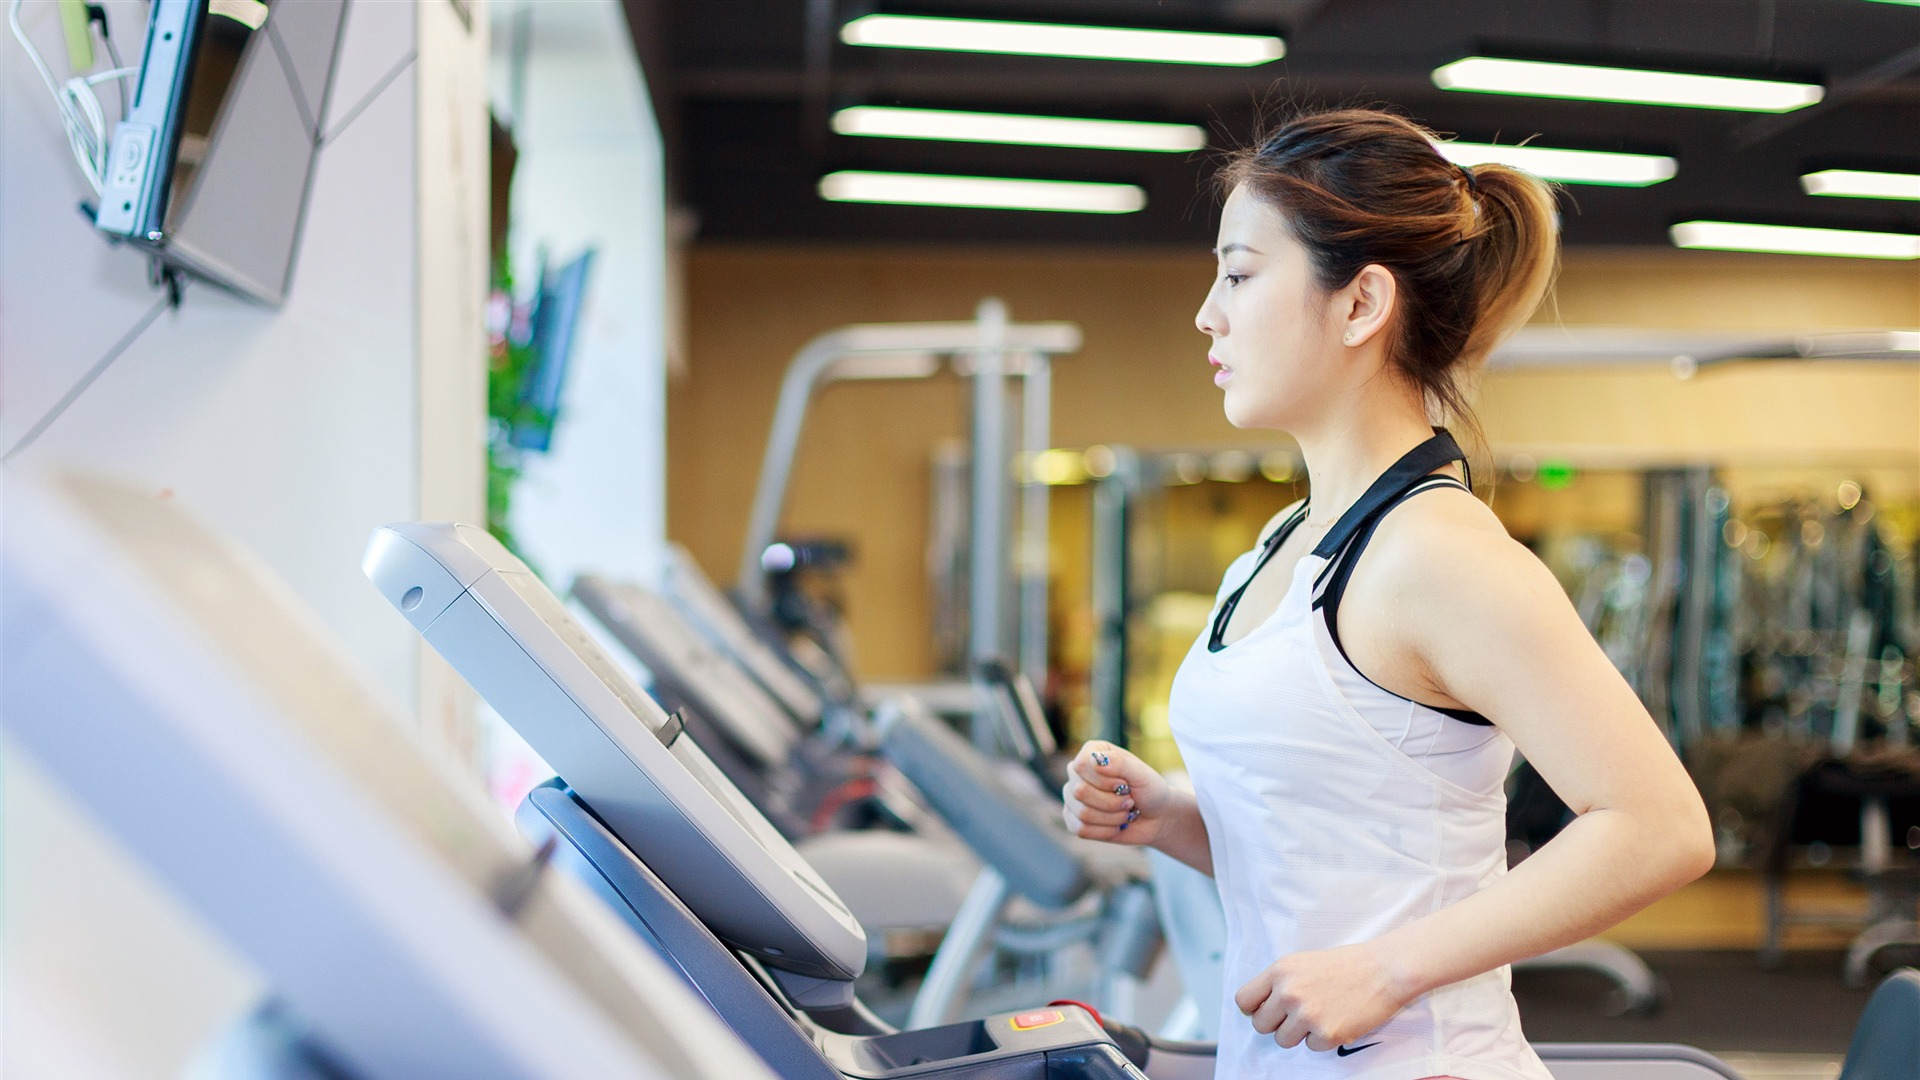 China pretty model indoor fitness running HD Wallpaper 1920x1080